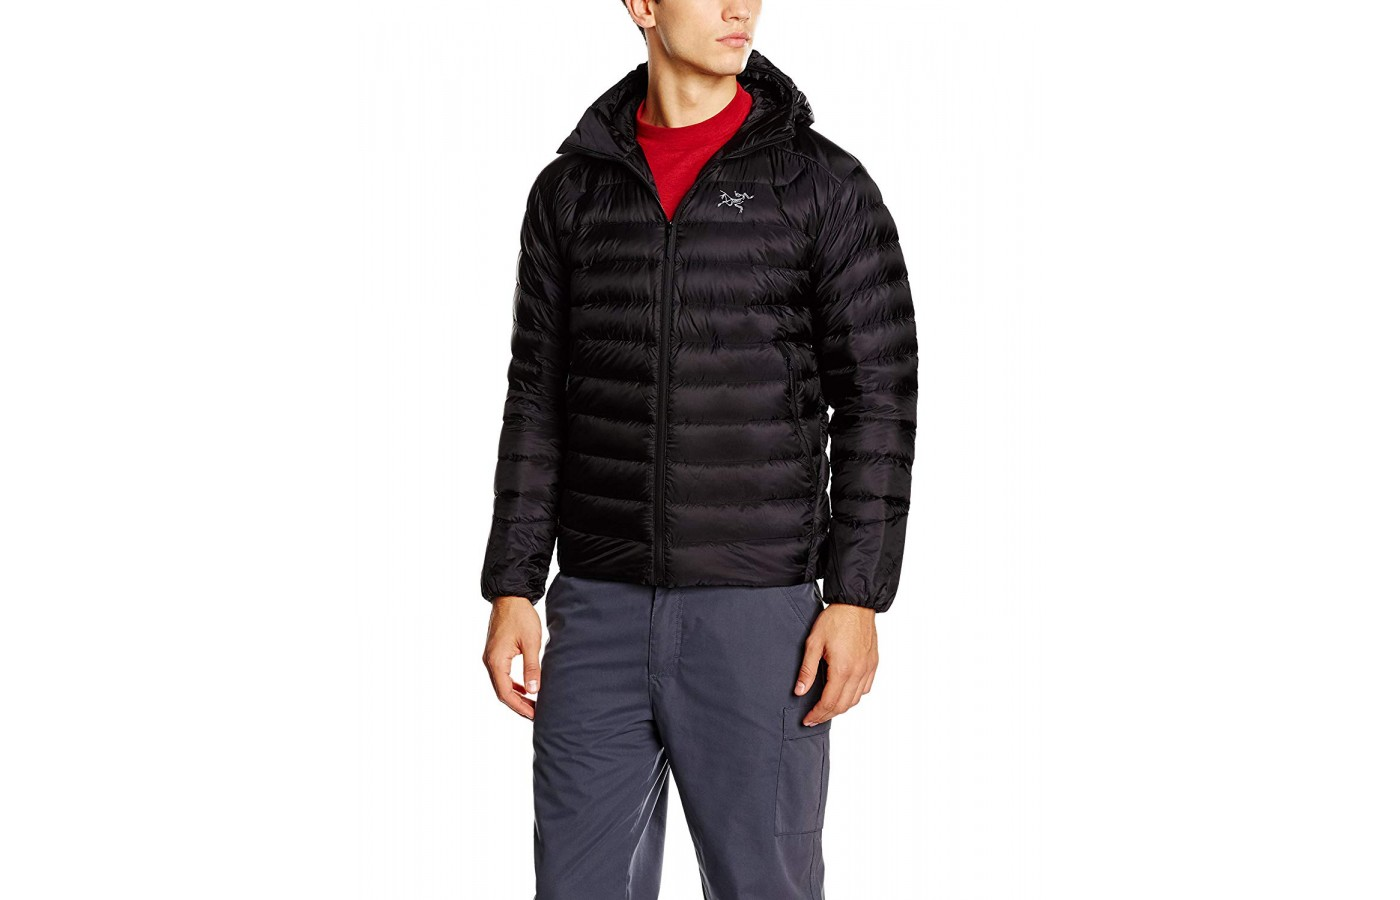 Arc'teryx Cerium Jacket full body